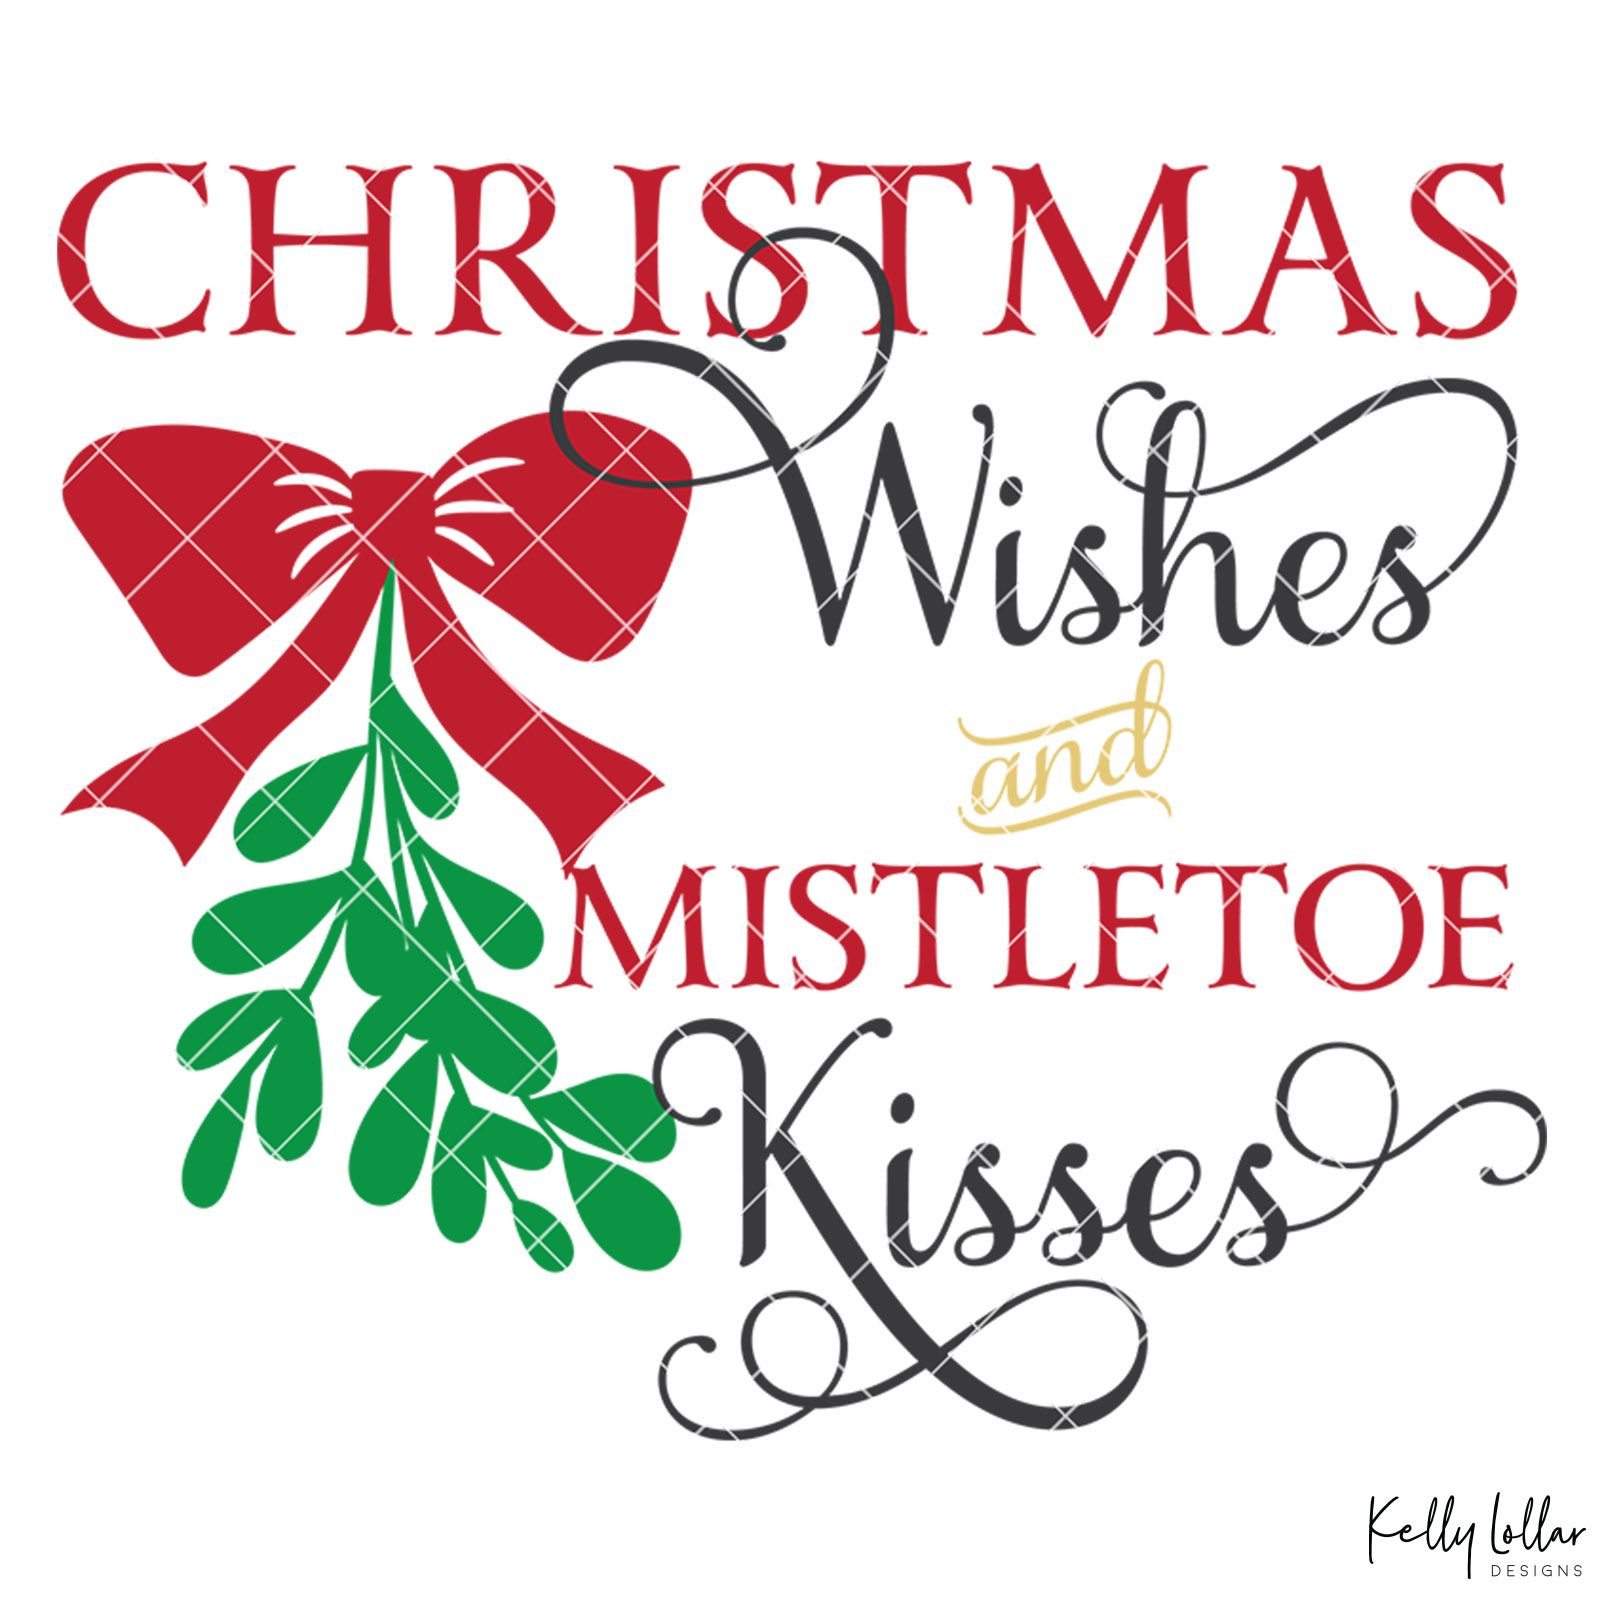 Christmas Wishes and Mistletoe Kisses - SoFontsy #mistletoesfootprintcraft